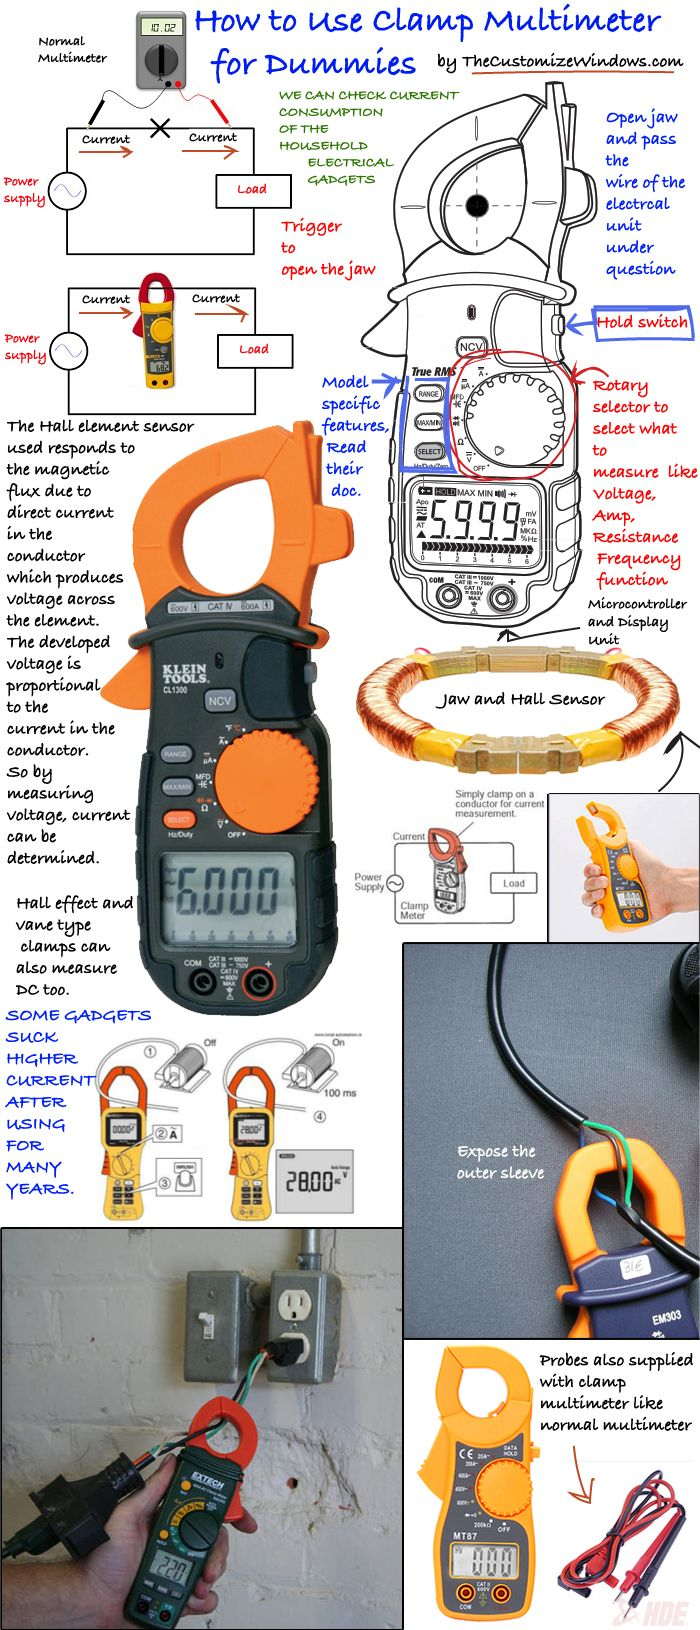 hight resolution of it is great for testing real current consumed by electrical gadgets used in our homes a clamp meter is like a digital multimeter with a jaw which can